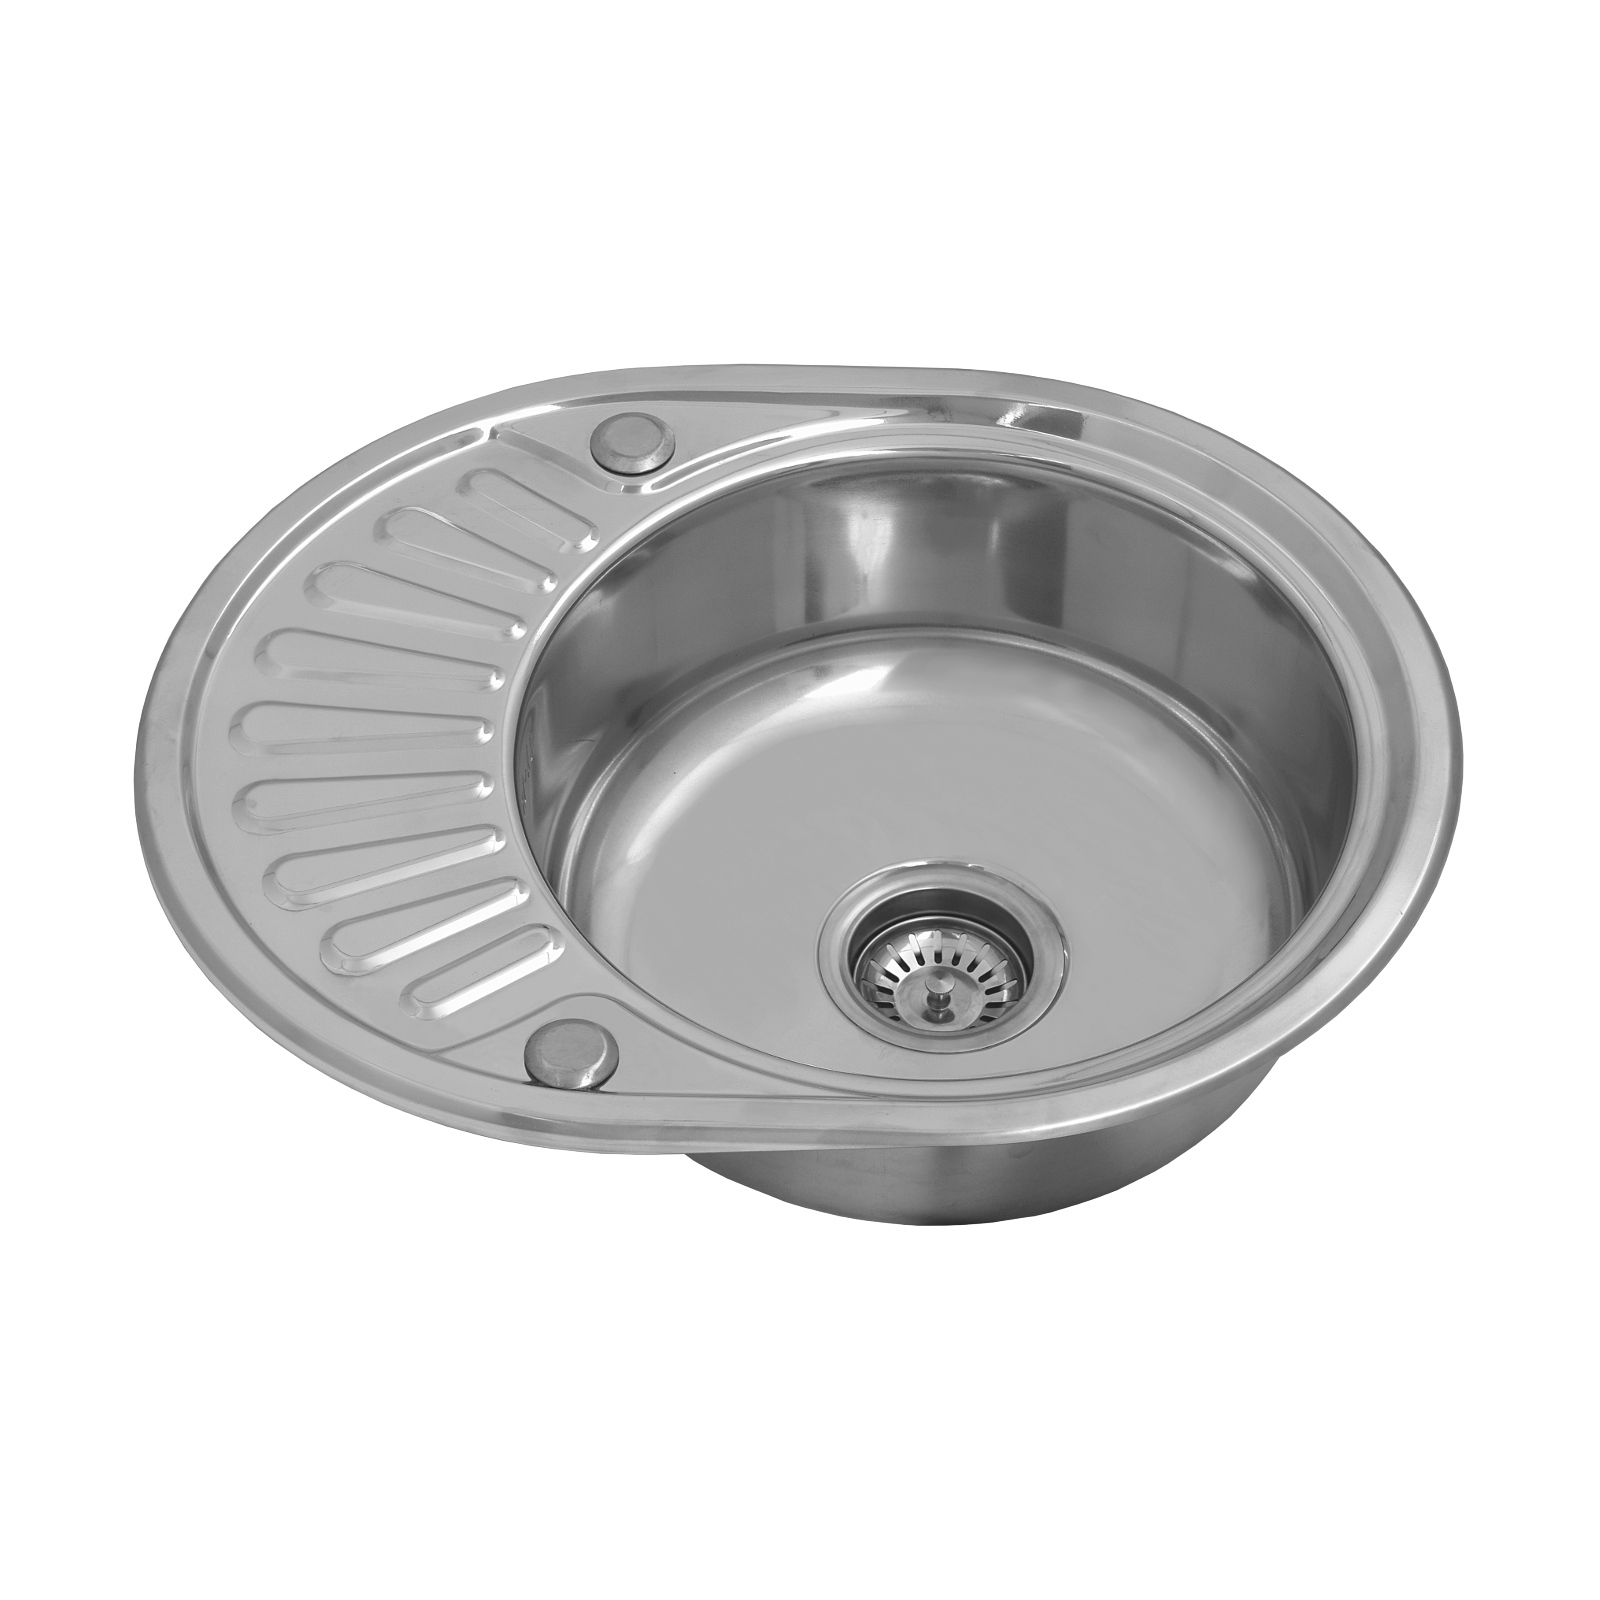 Kitchen Sink With Drainer Single Bowl